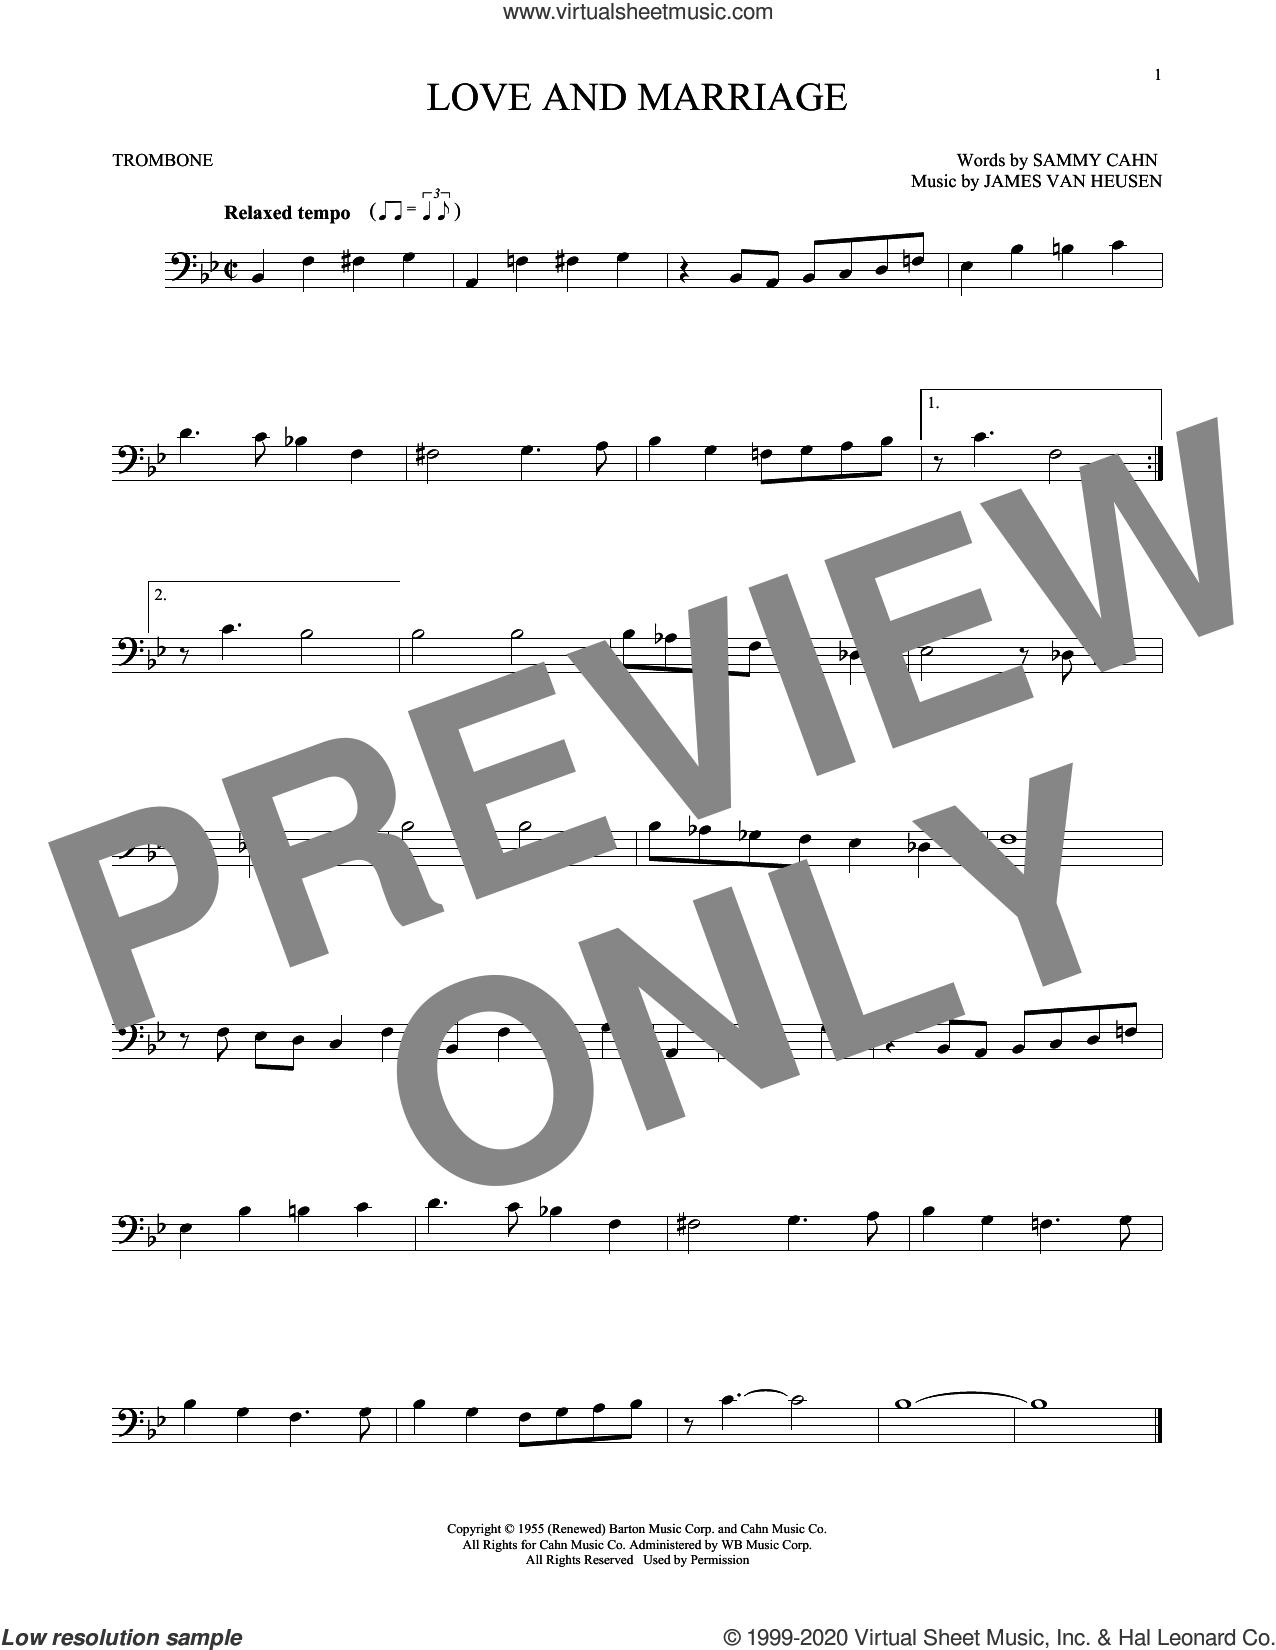 Love And Marriage sheet music for trombone solo by Sammy Cahn and Jimmy van Heusen, intermediate skill level